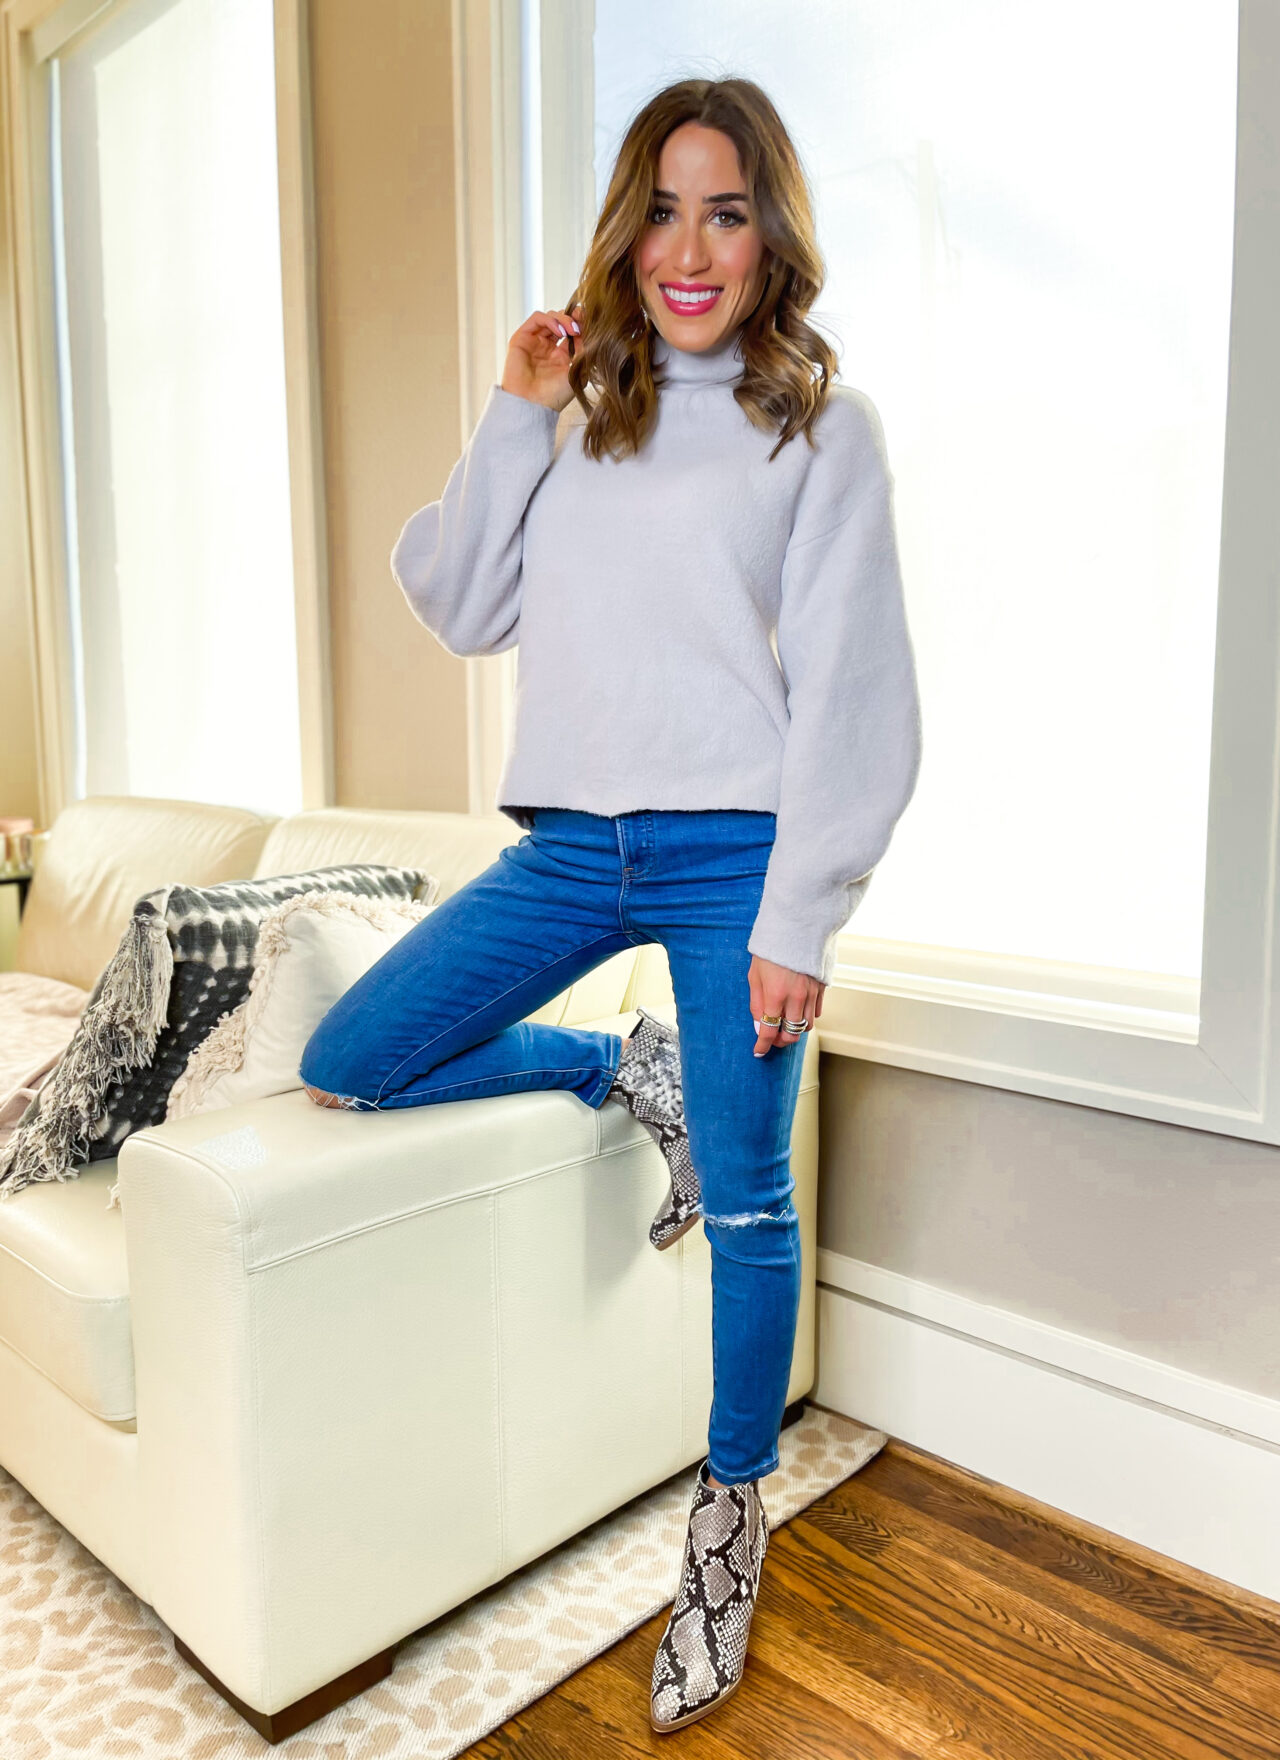 lifestyle and fashion blogger alexis belbel sharing her favorite petite jeans from express and some cozy sweaters and bodysuits you can pair with them   adoubledose.com